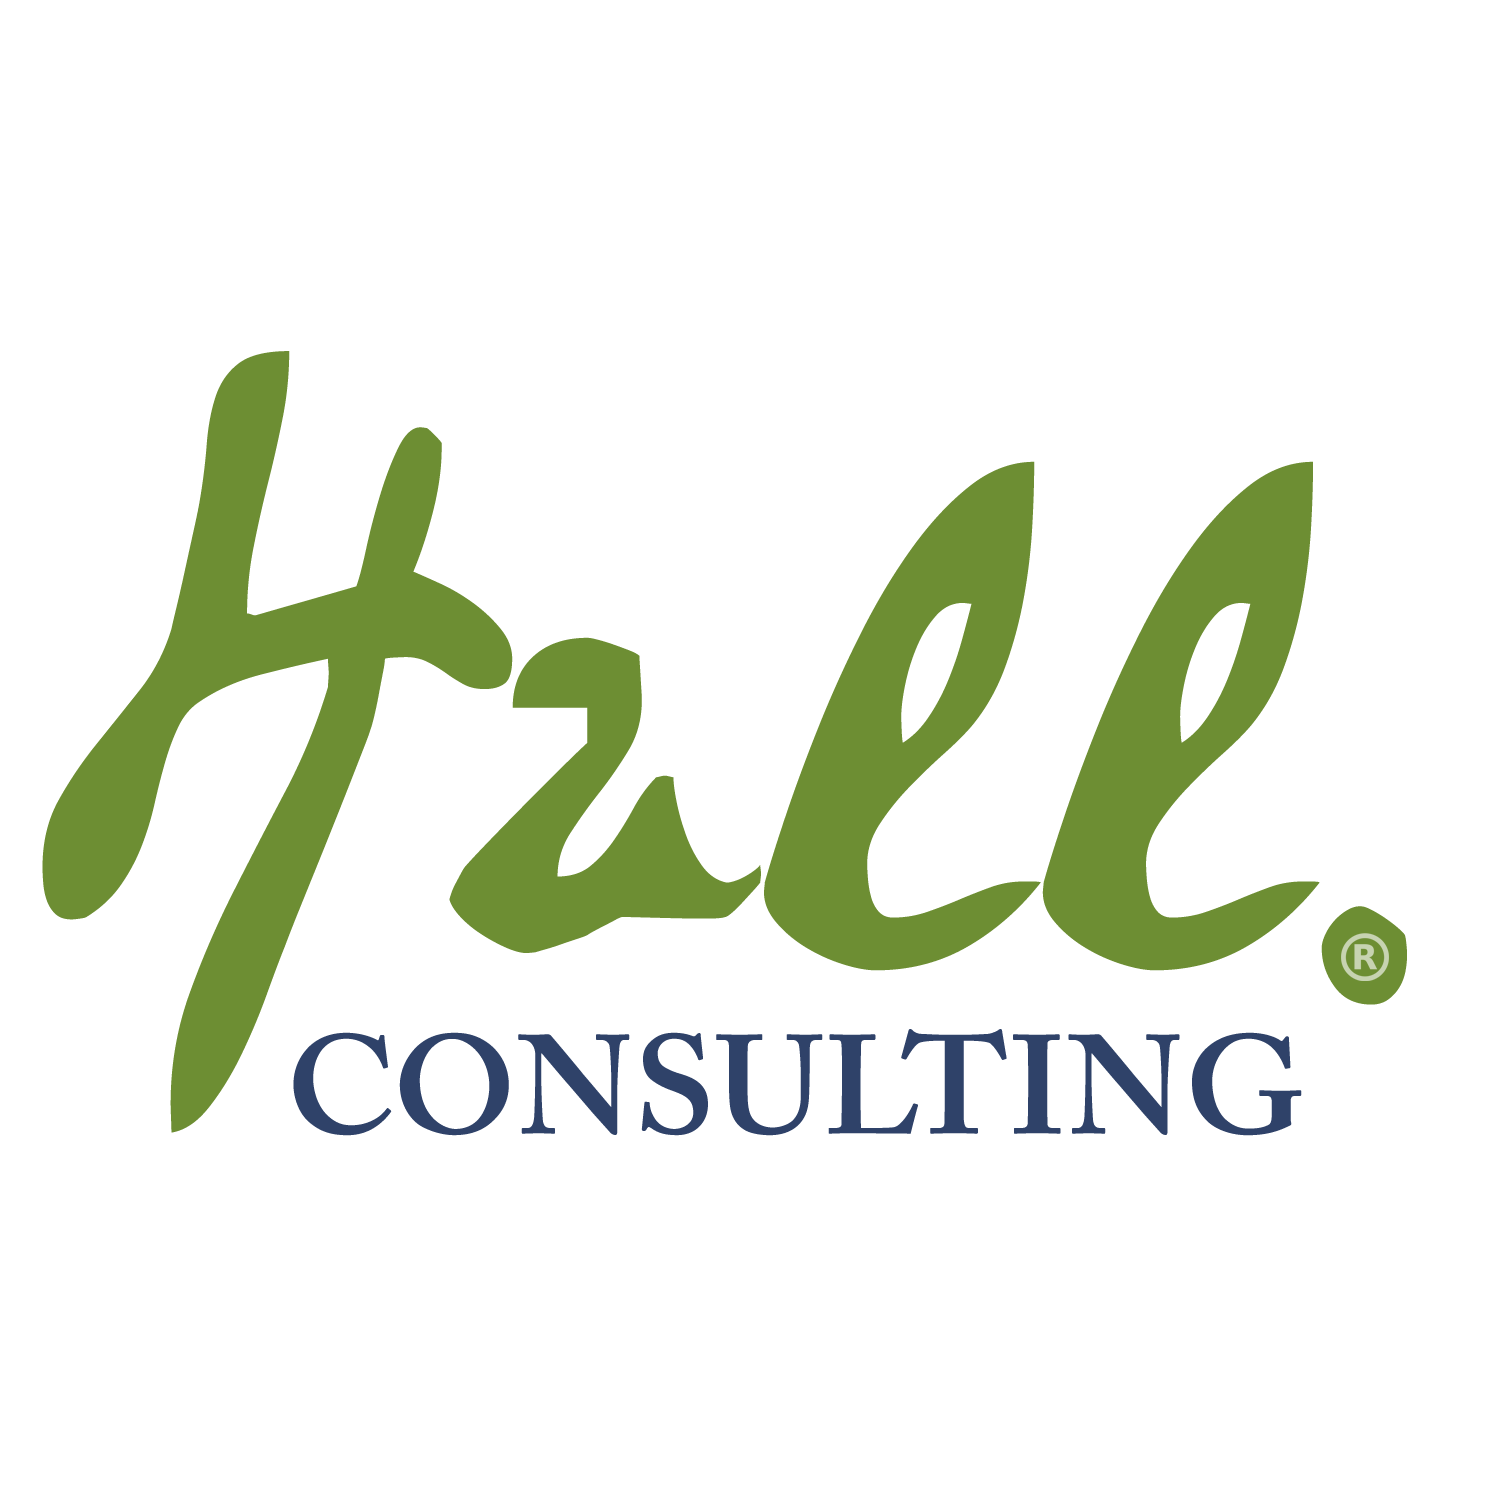 Hall Consulting